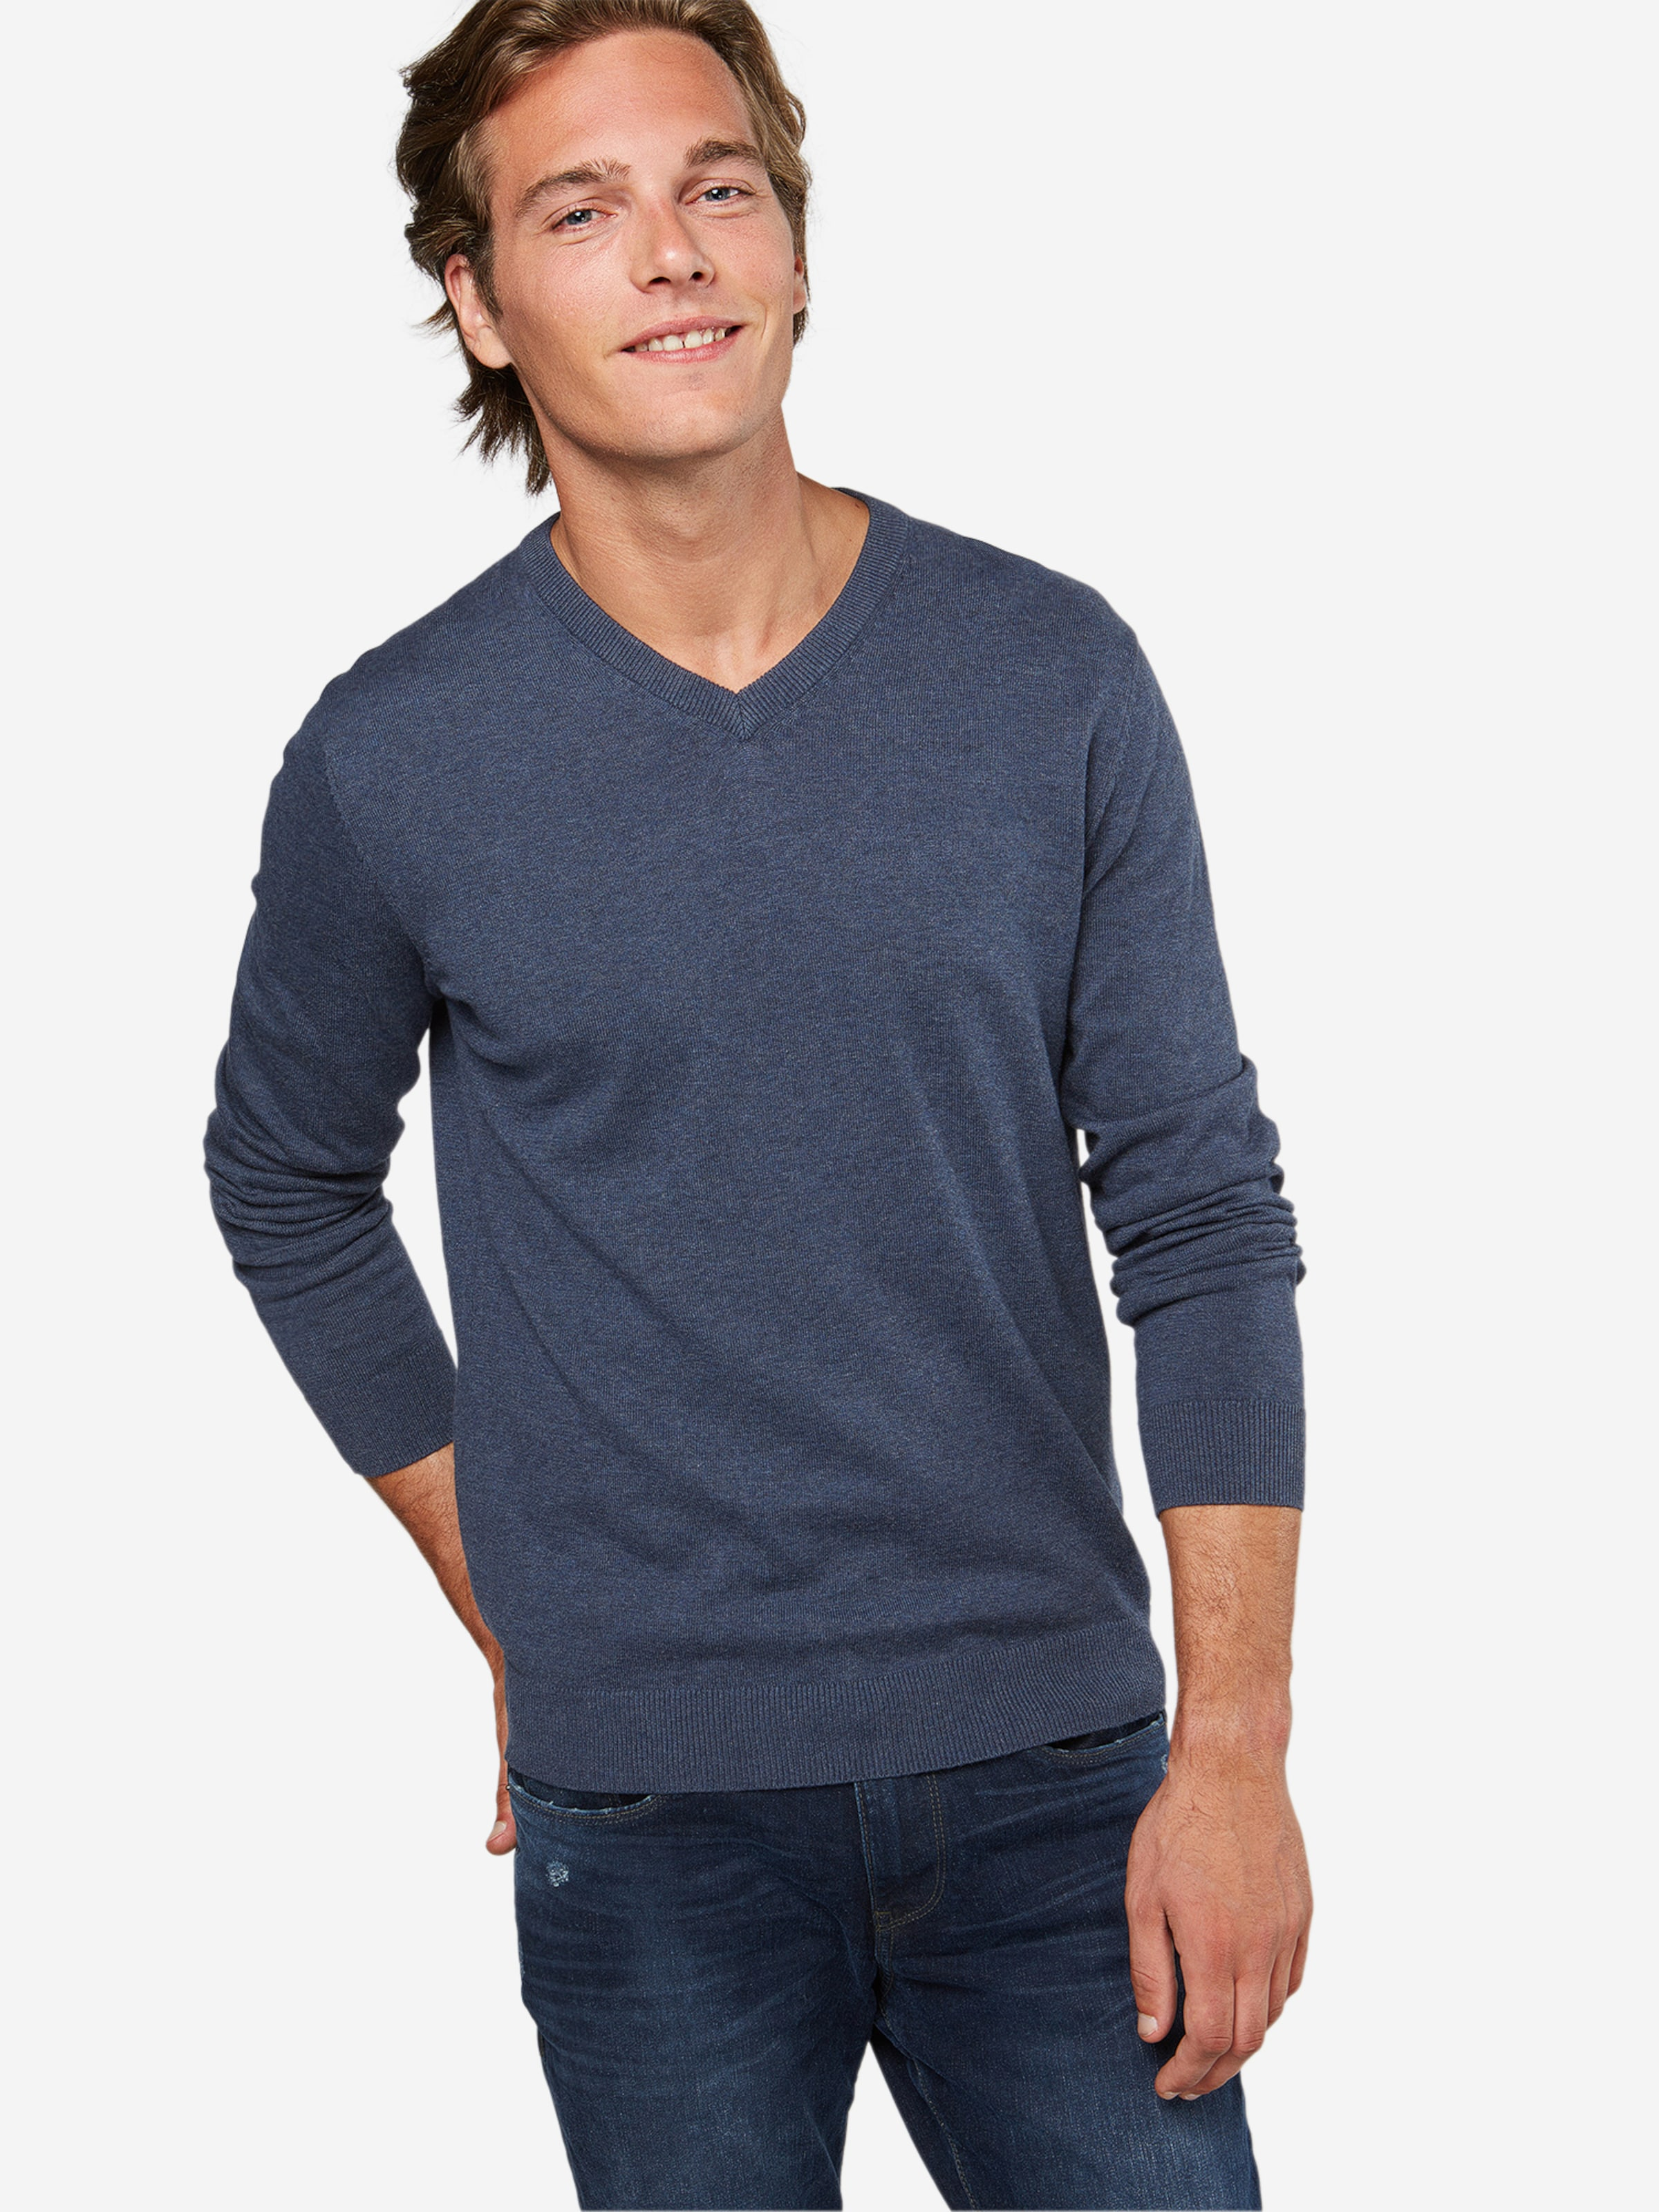 Marine over Co V Esprit En nk' Pull 'basic CerodxB